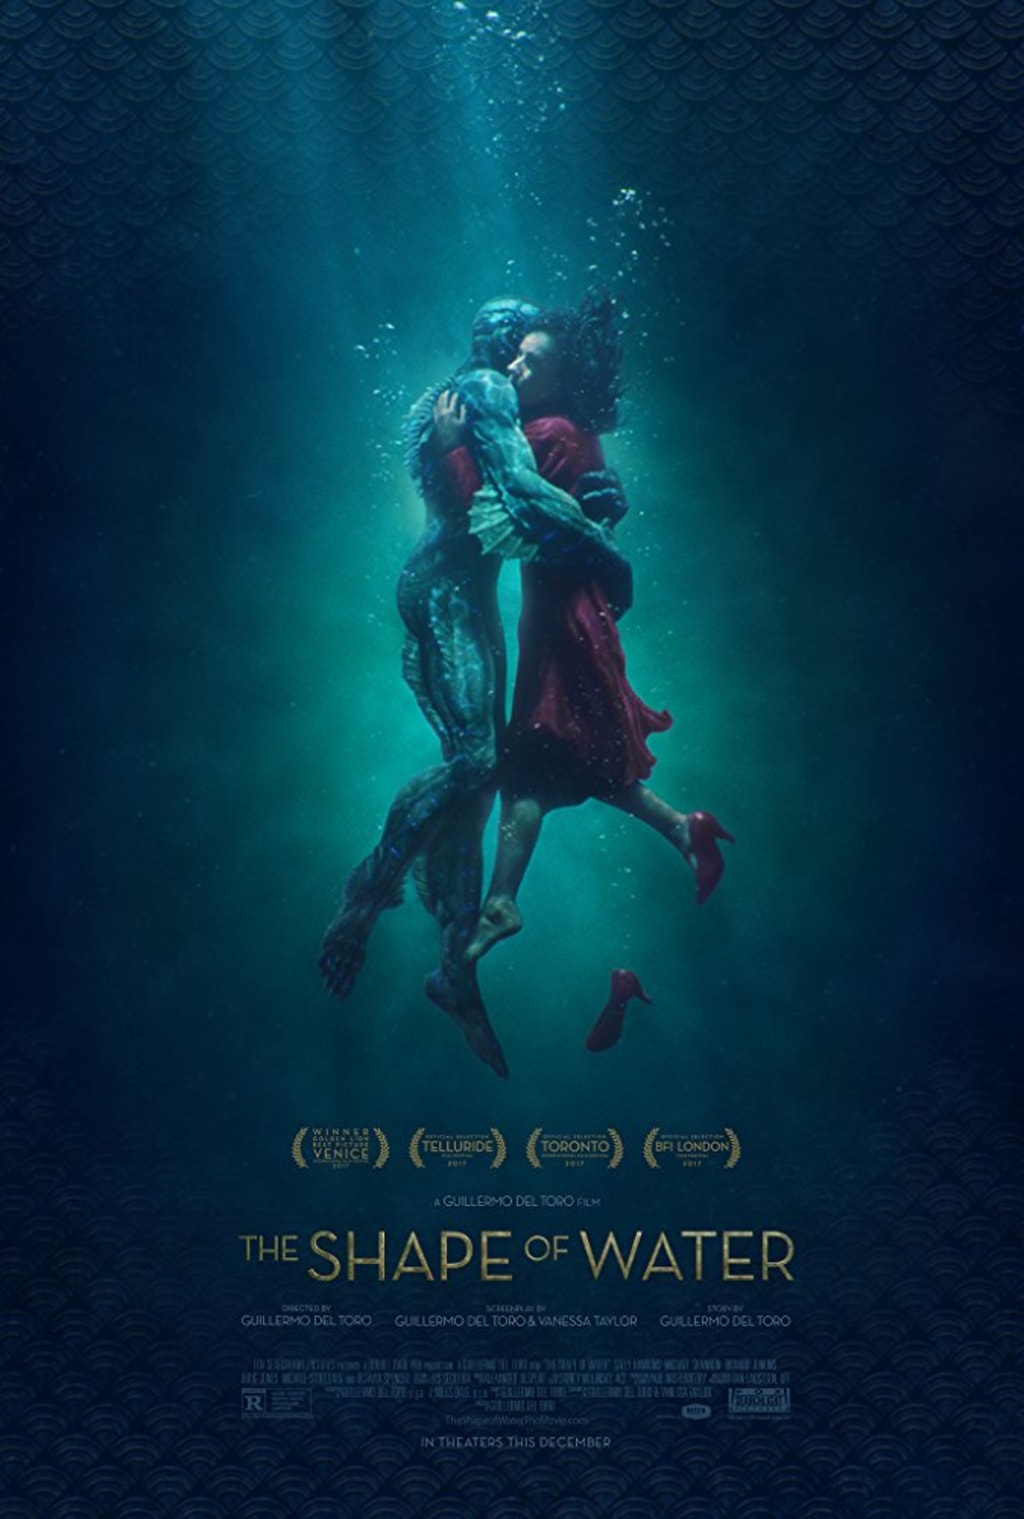 'The Shape of Water': Good Schlock at Best - Not Best Picture